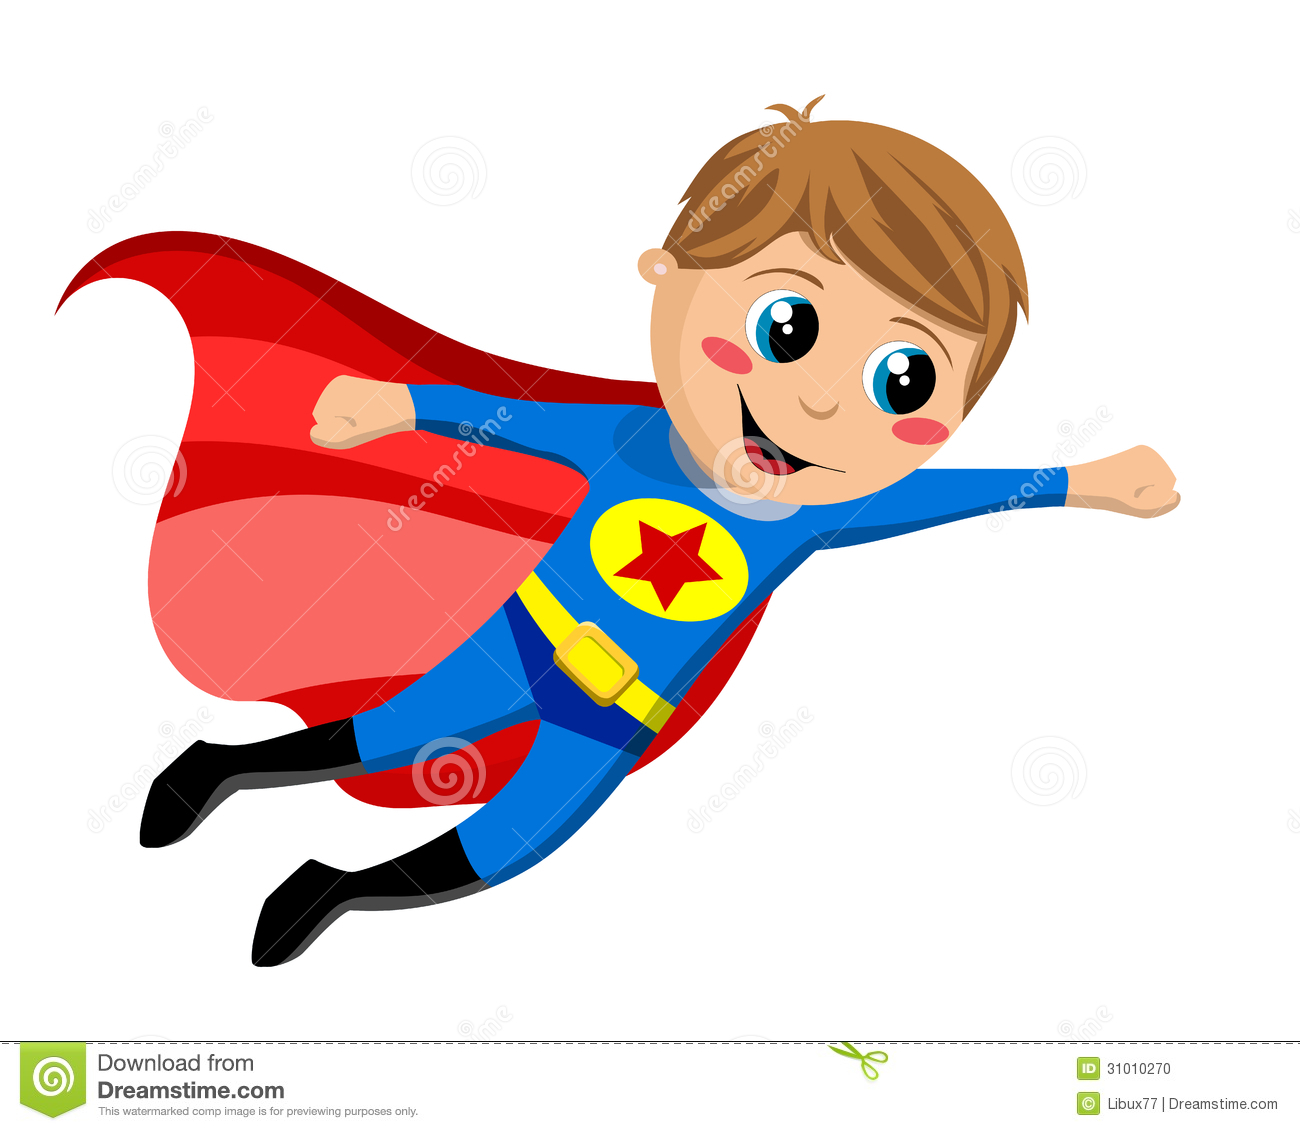 72+ Kid Superhero Clipart.